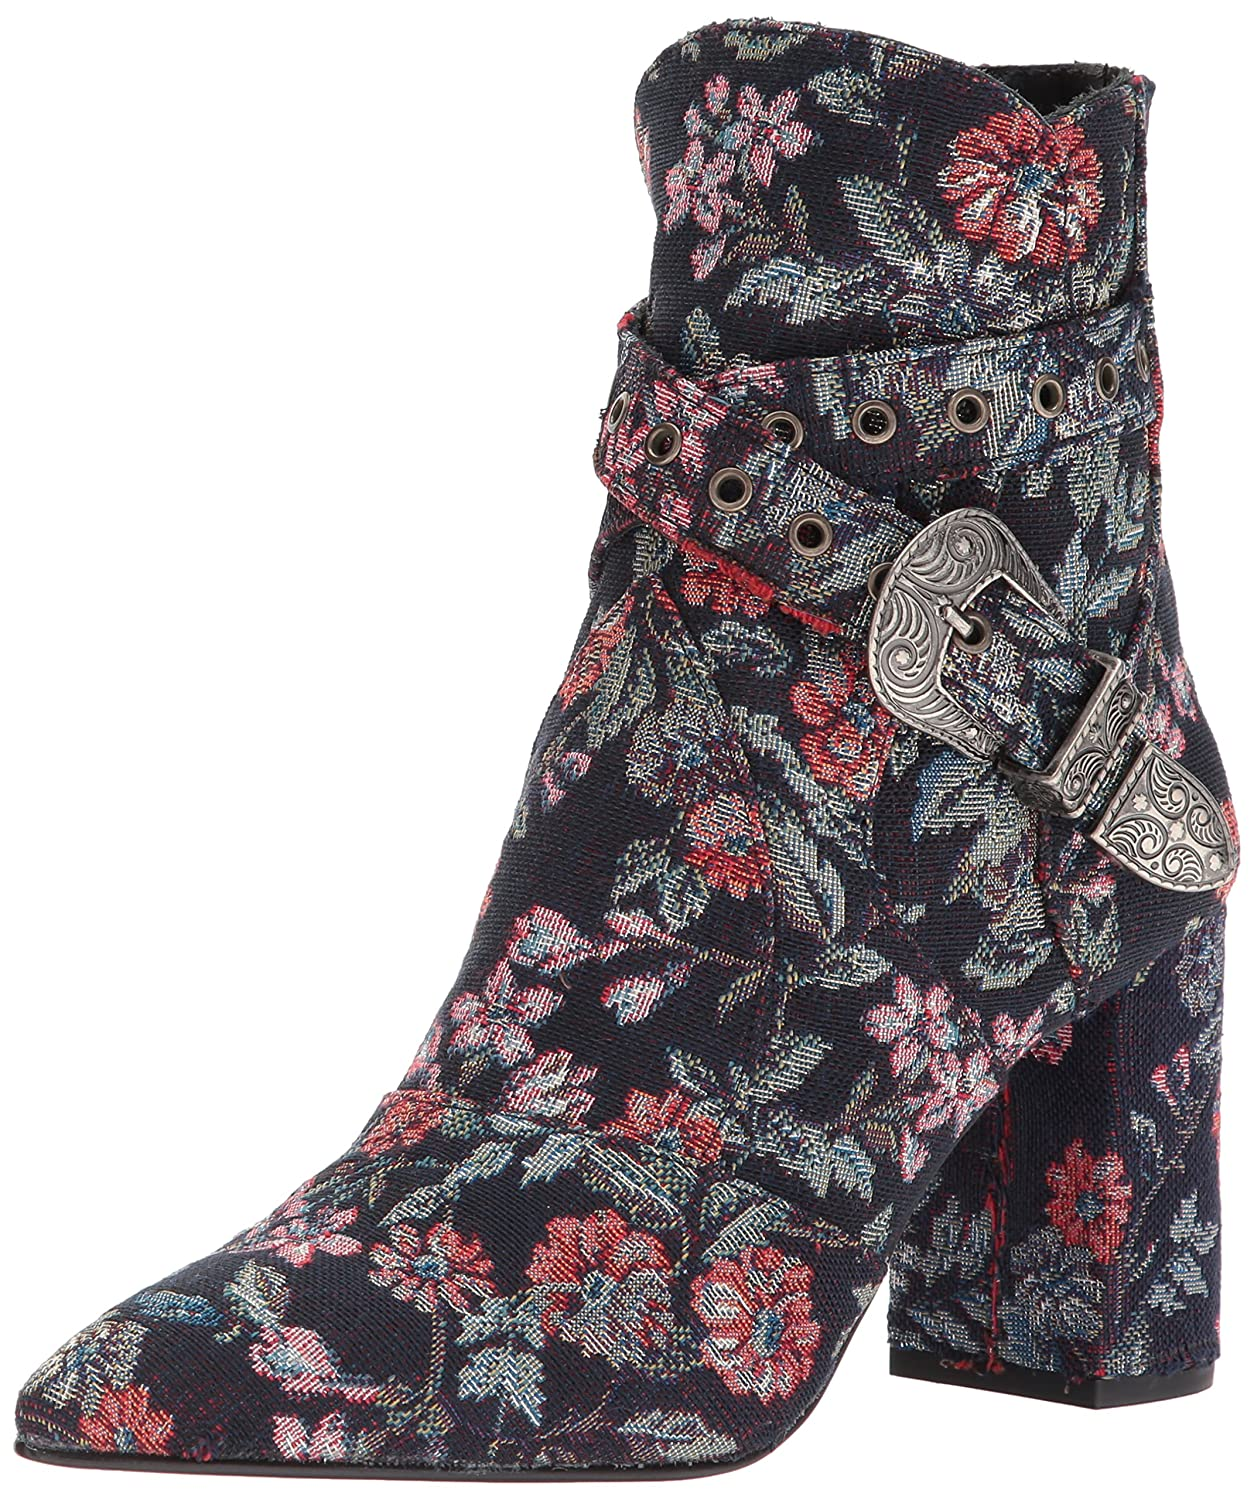 Badgley Mischka Women's Morrisey Ankle Boot B073C17T1D 8 B(M) US|Navy Floral